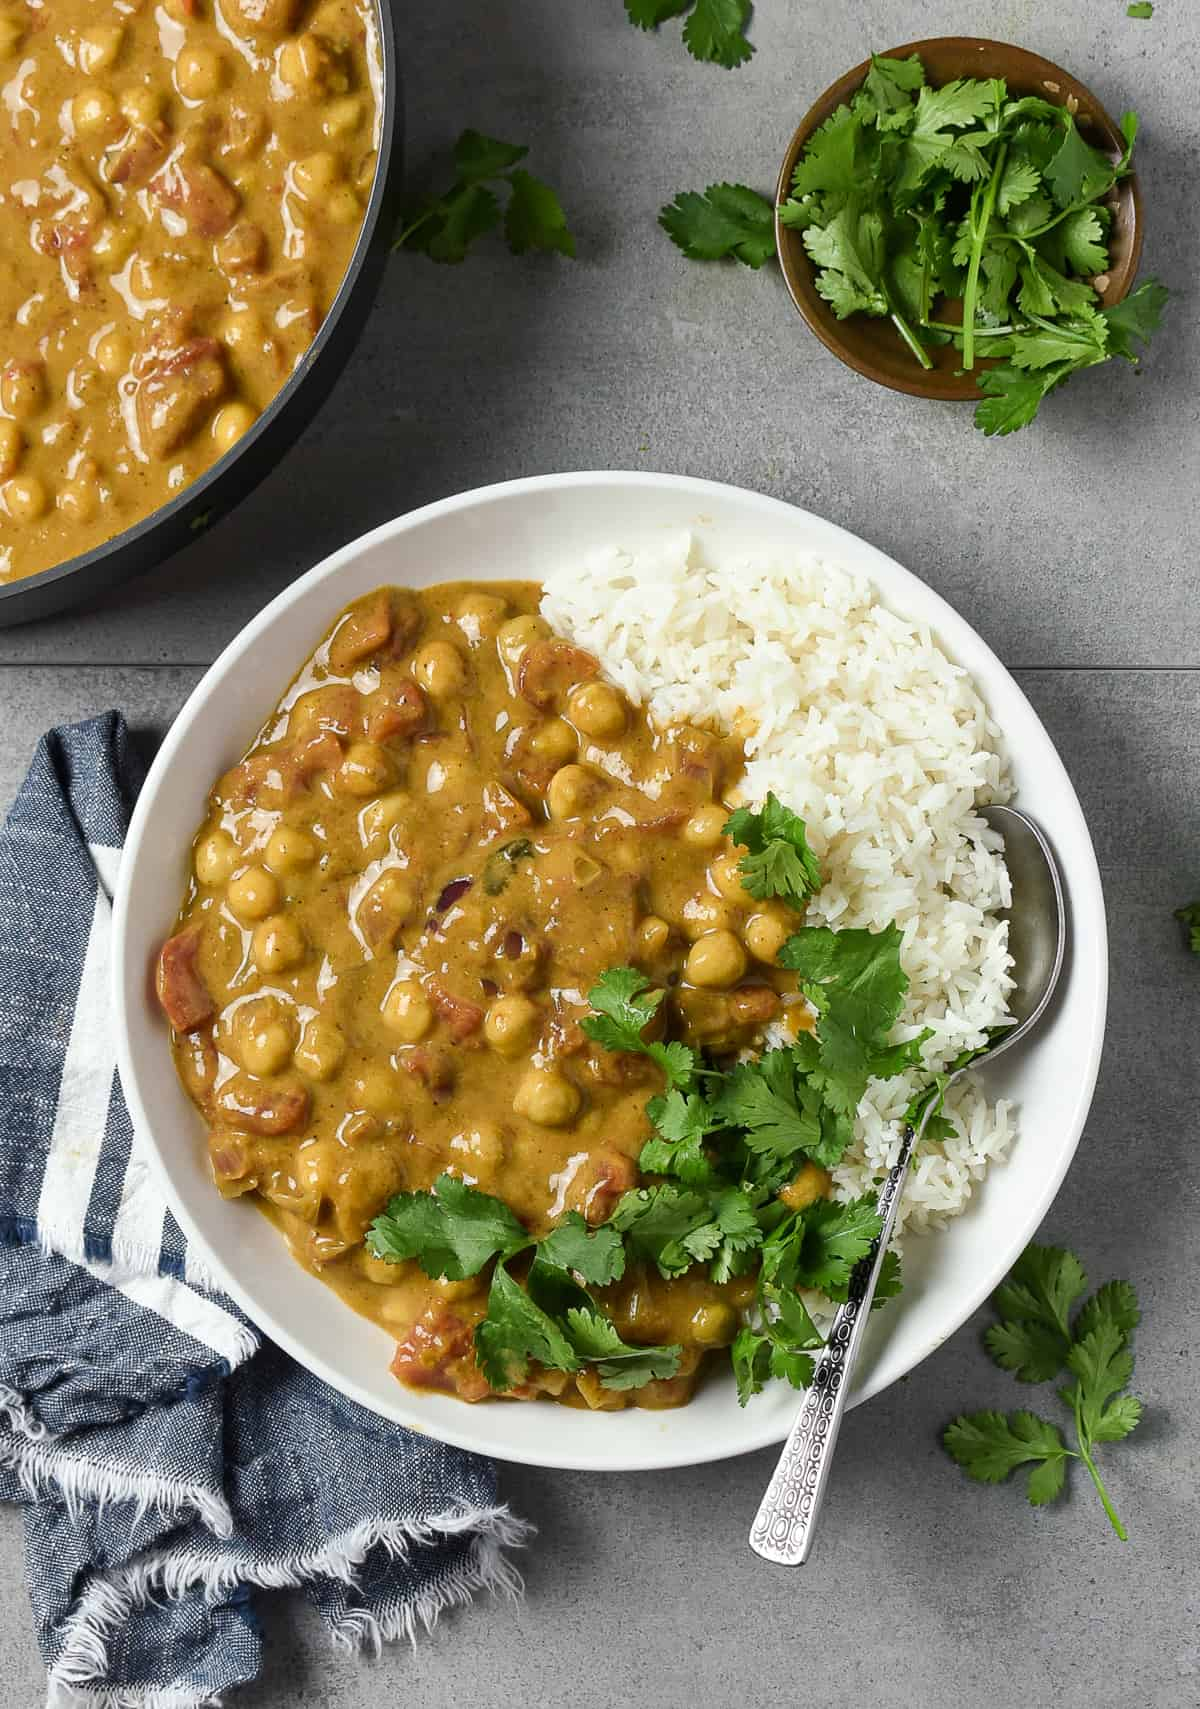 Chickpea curry and rice on white plate with a spoon.